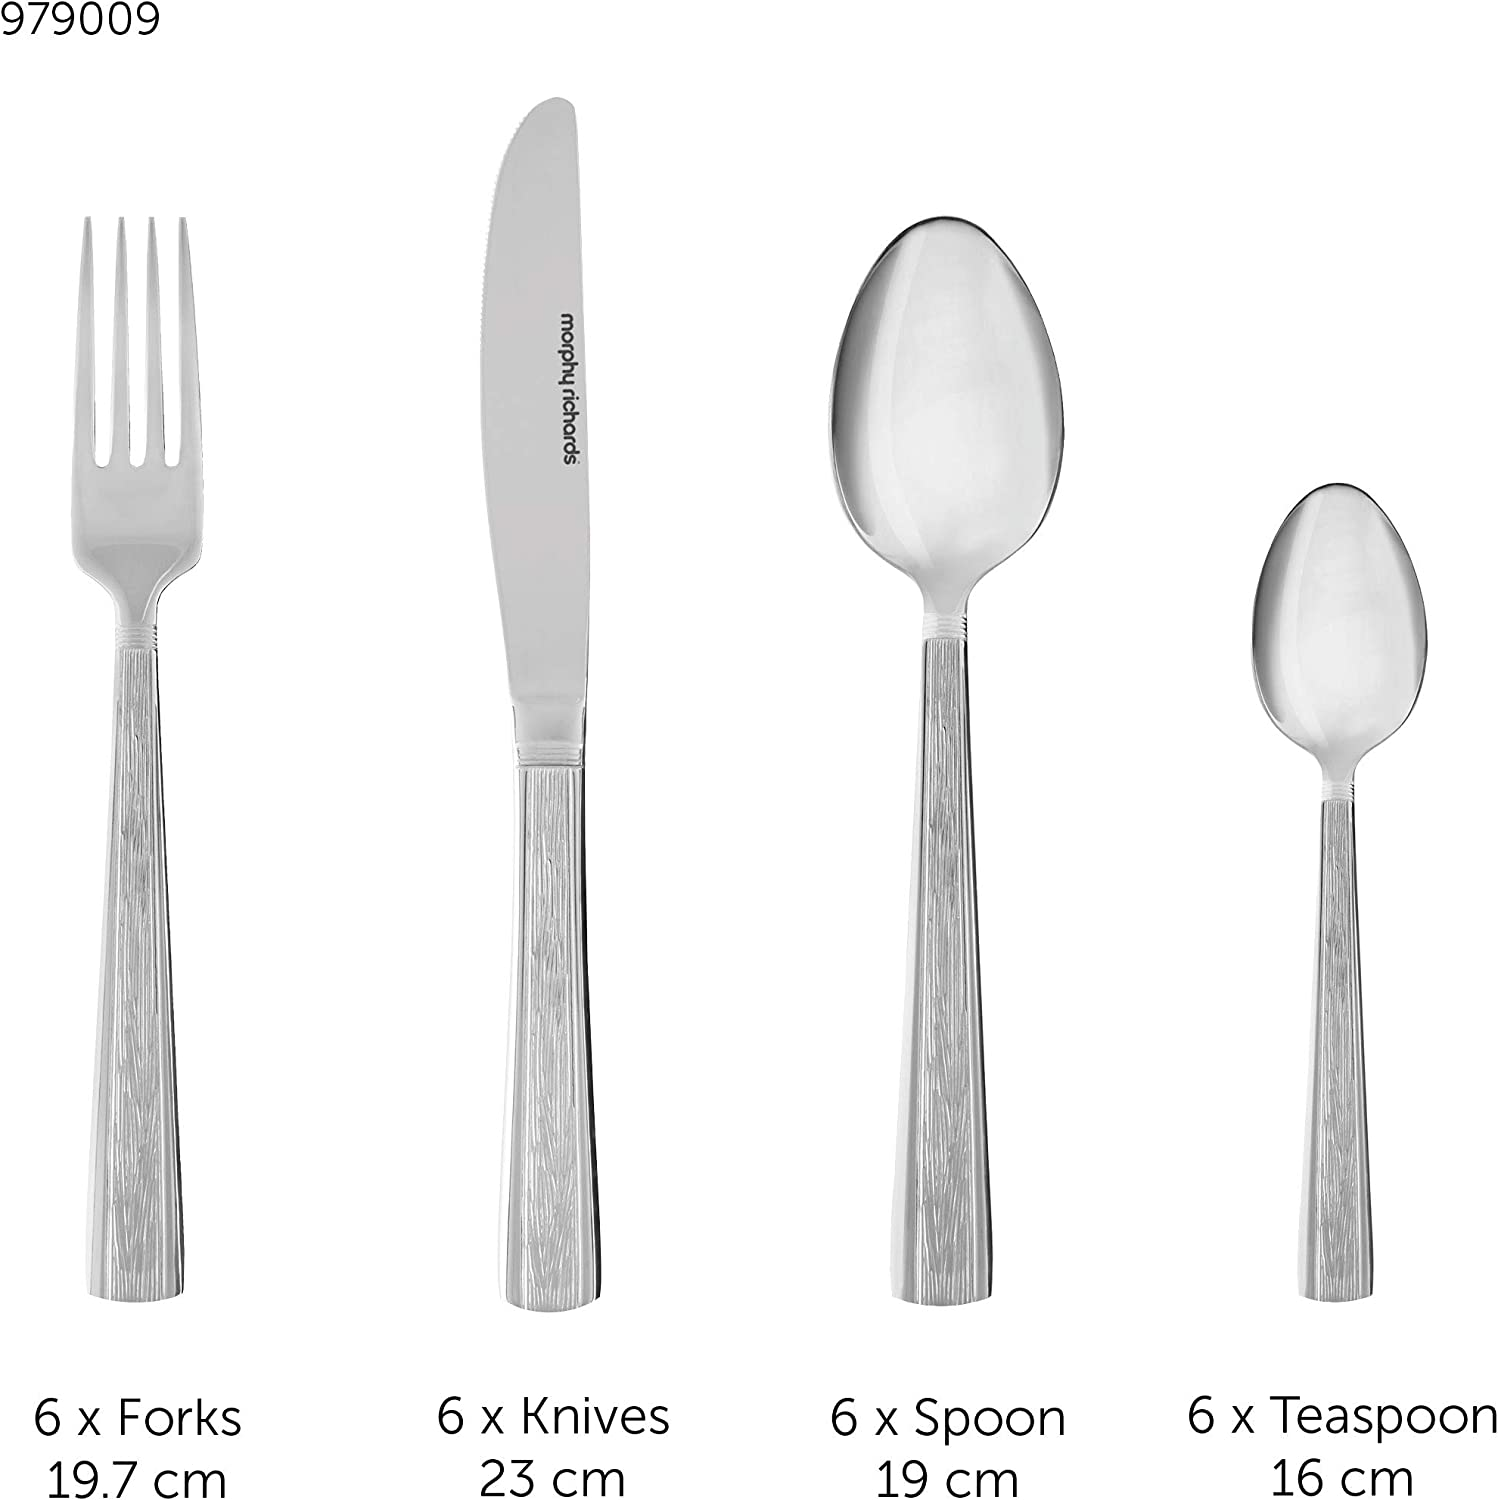 Morphy Richards Cutlery Set 24 Pieces Stainless Steel with Hammered Effect Design